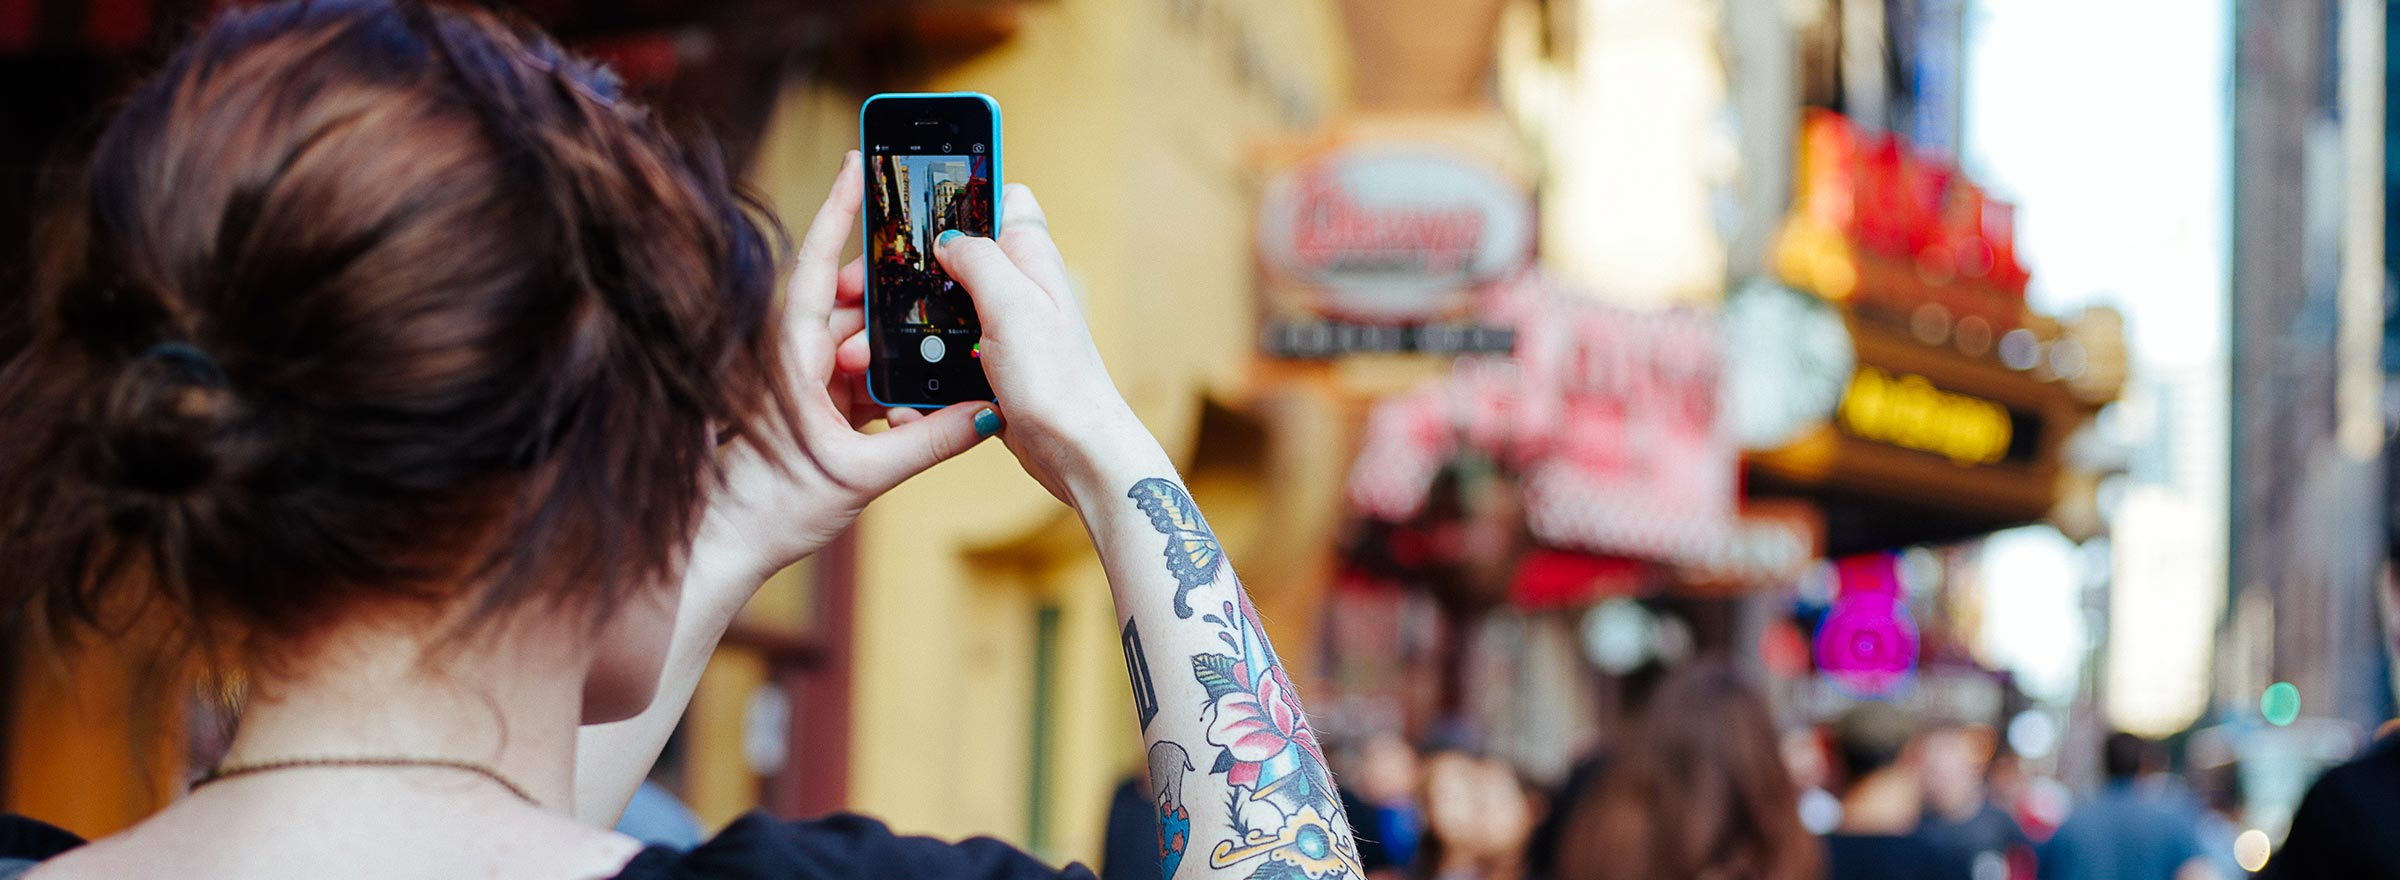 woman with a tattooed arm taking a picture with her cellphone